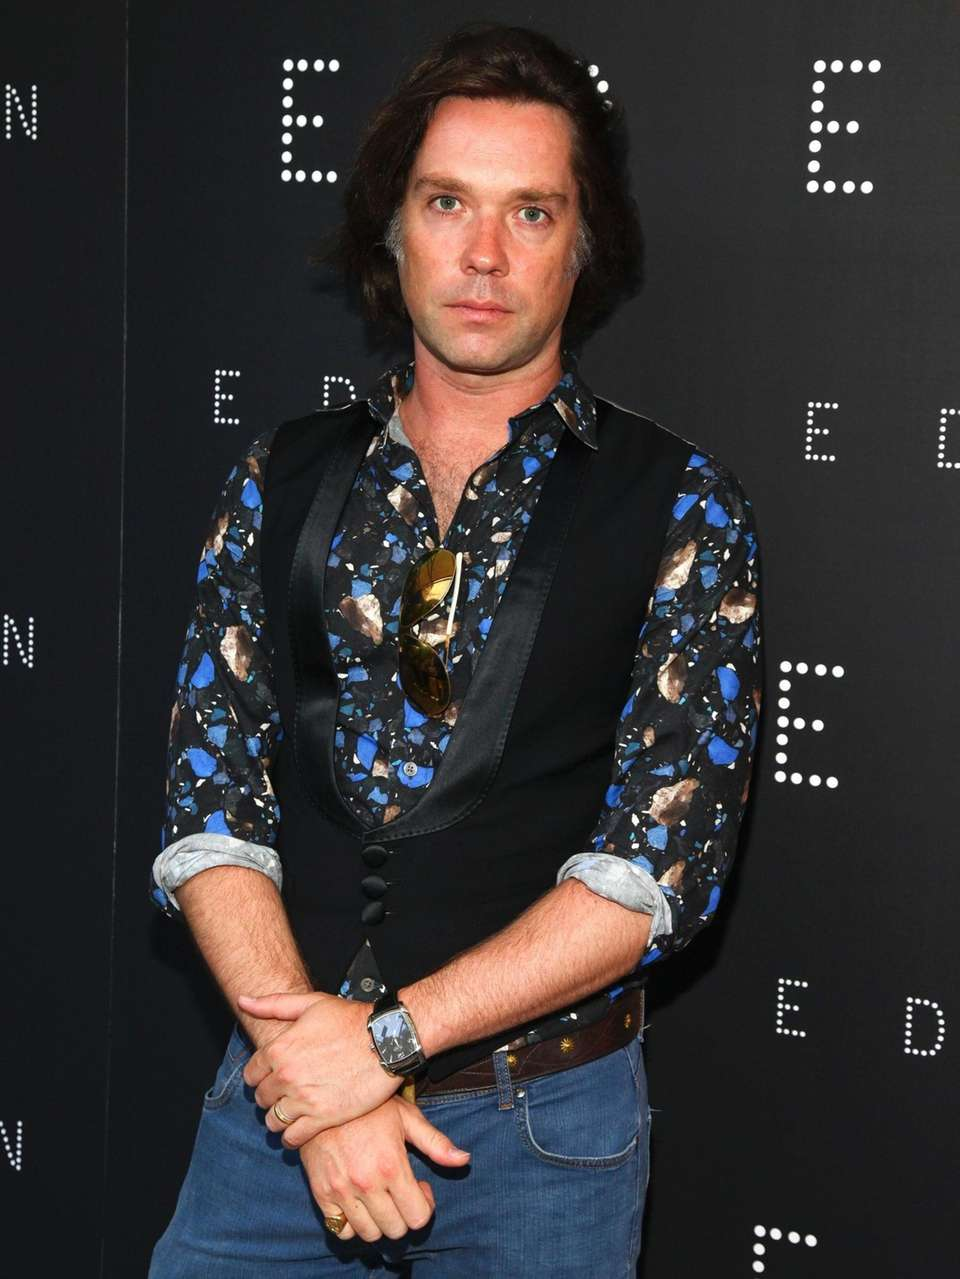 Grammy Award-nominated singer-songwriter Rufus Wainwright (pictured) is back